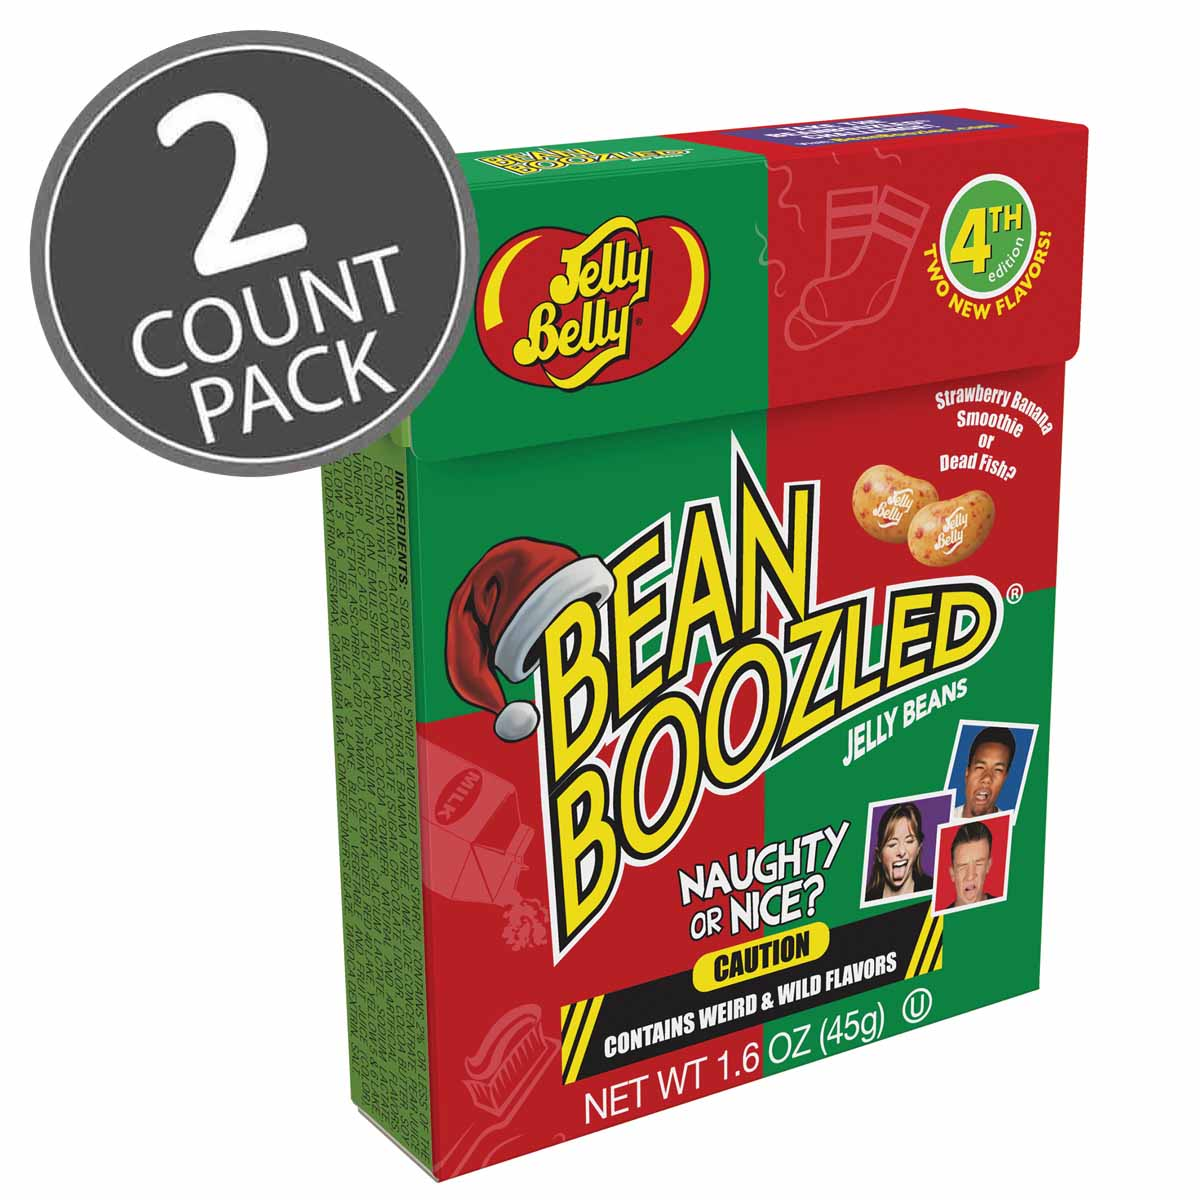 Jelly Belly BeanBoozled Naughty or Nice Jelly Beans 1.6 oz Flip Top Box 4th Ed. (2 Pack) by